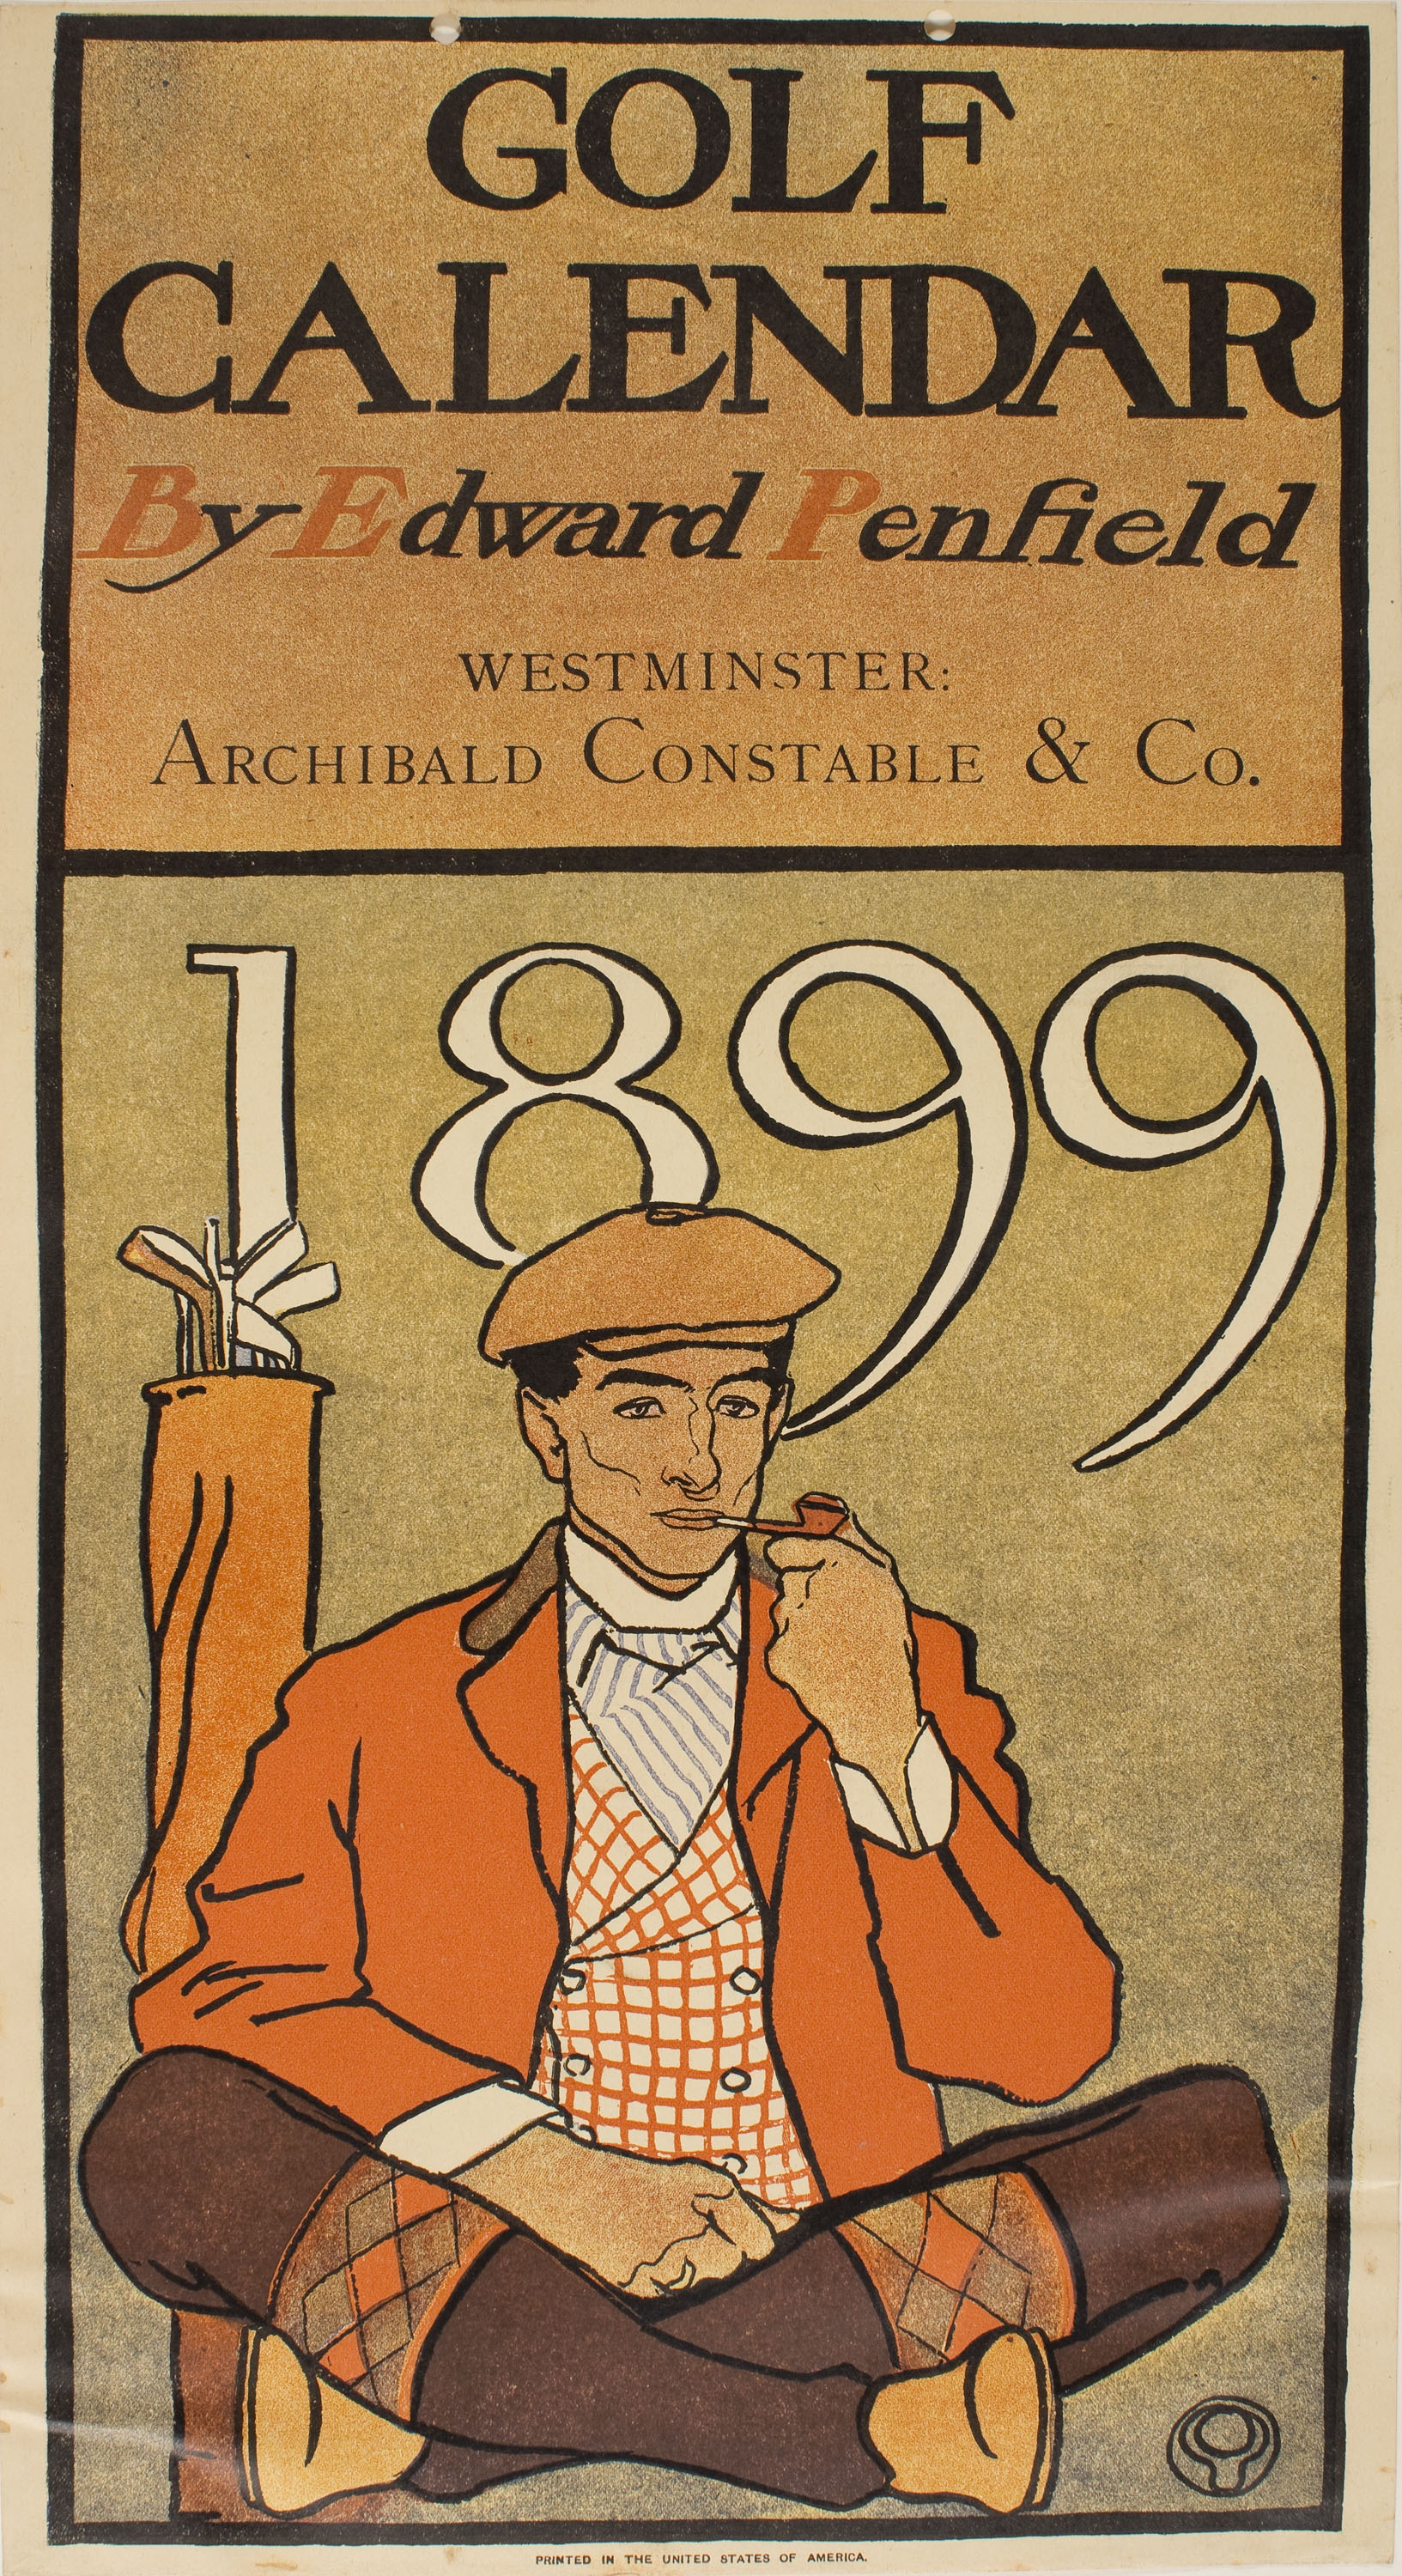 Edward Penfield - Golf Calendar - 1899